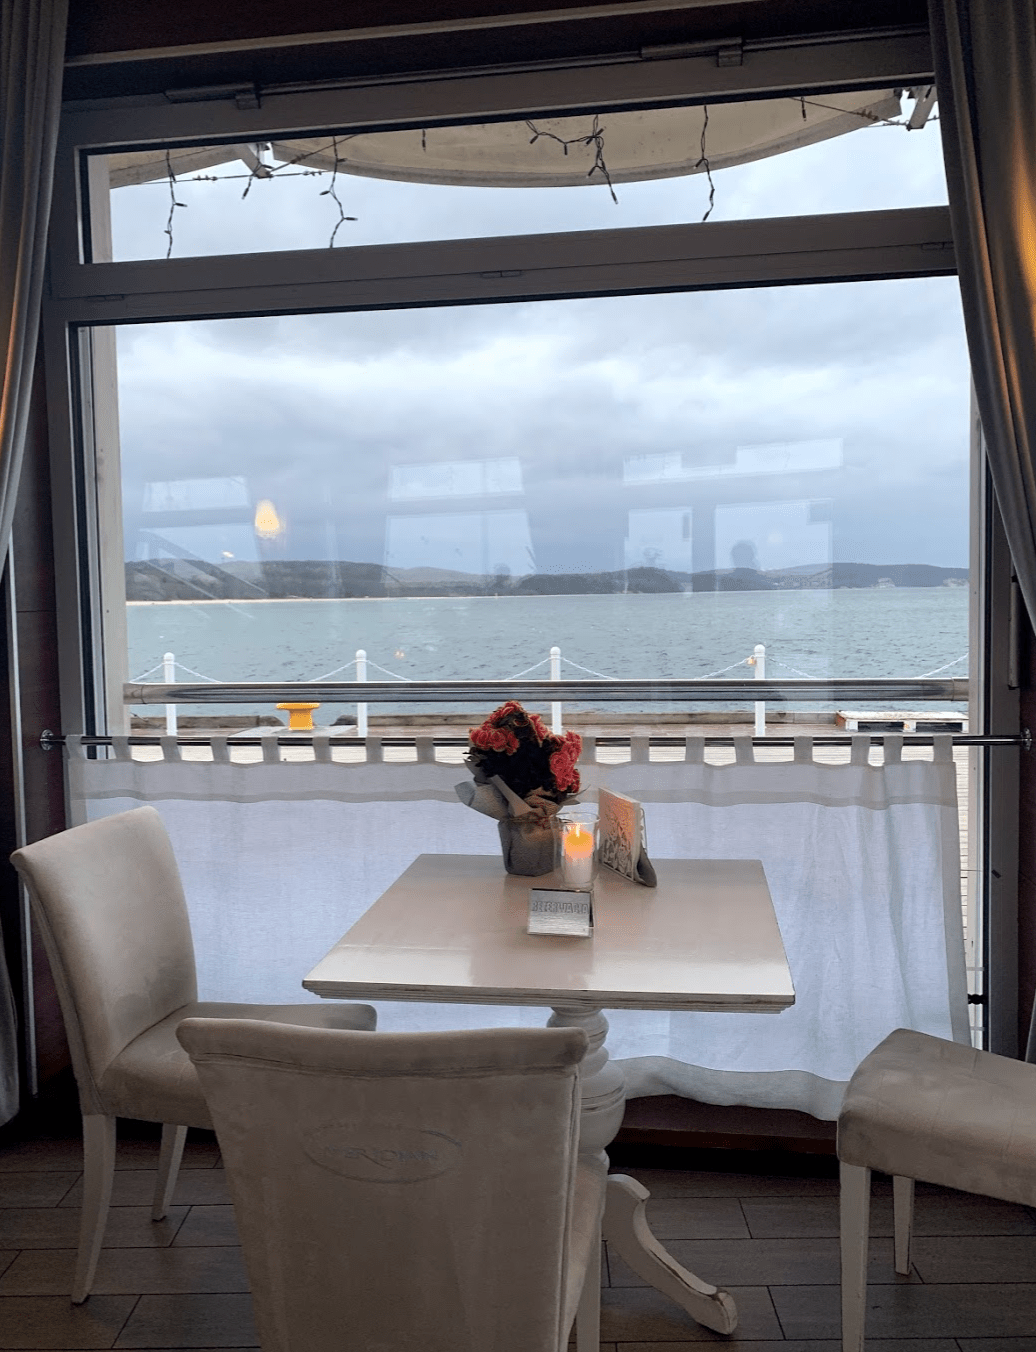 Table at Modern Restaurant on the Pier